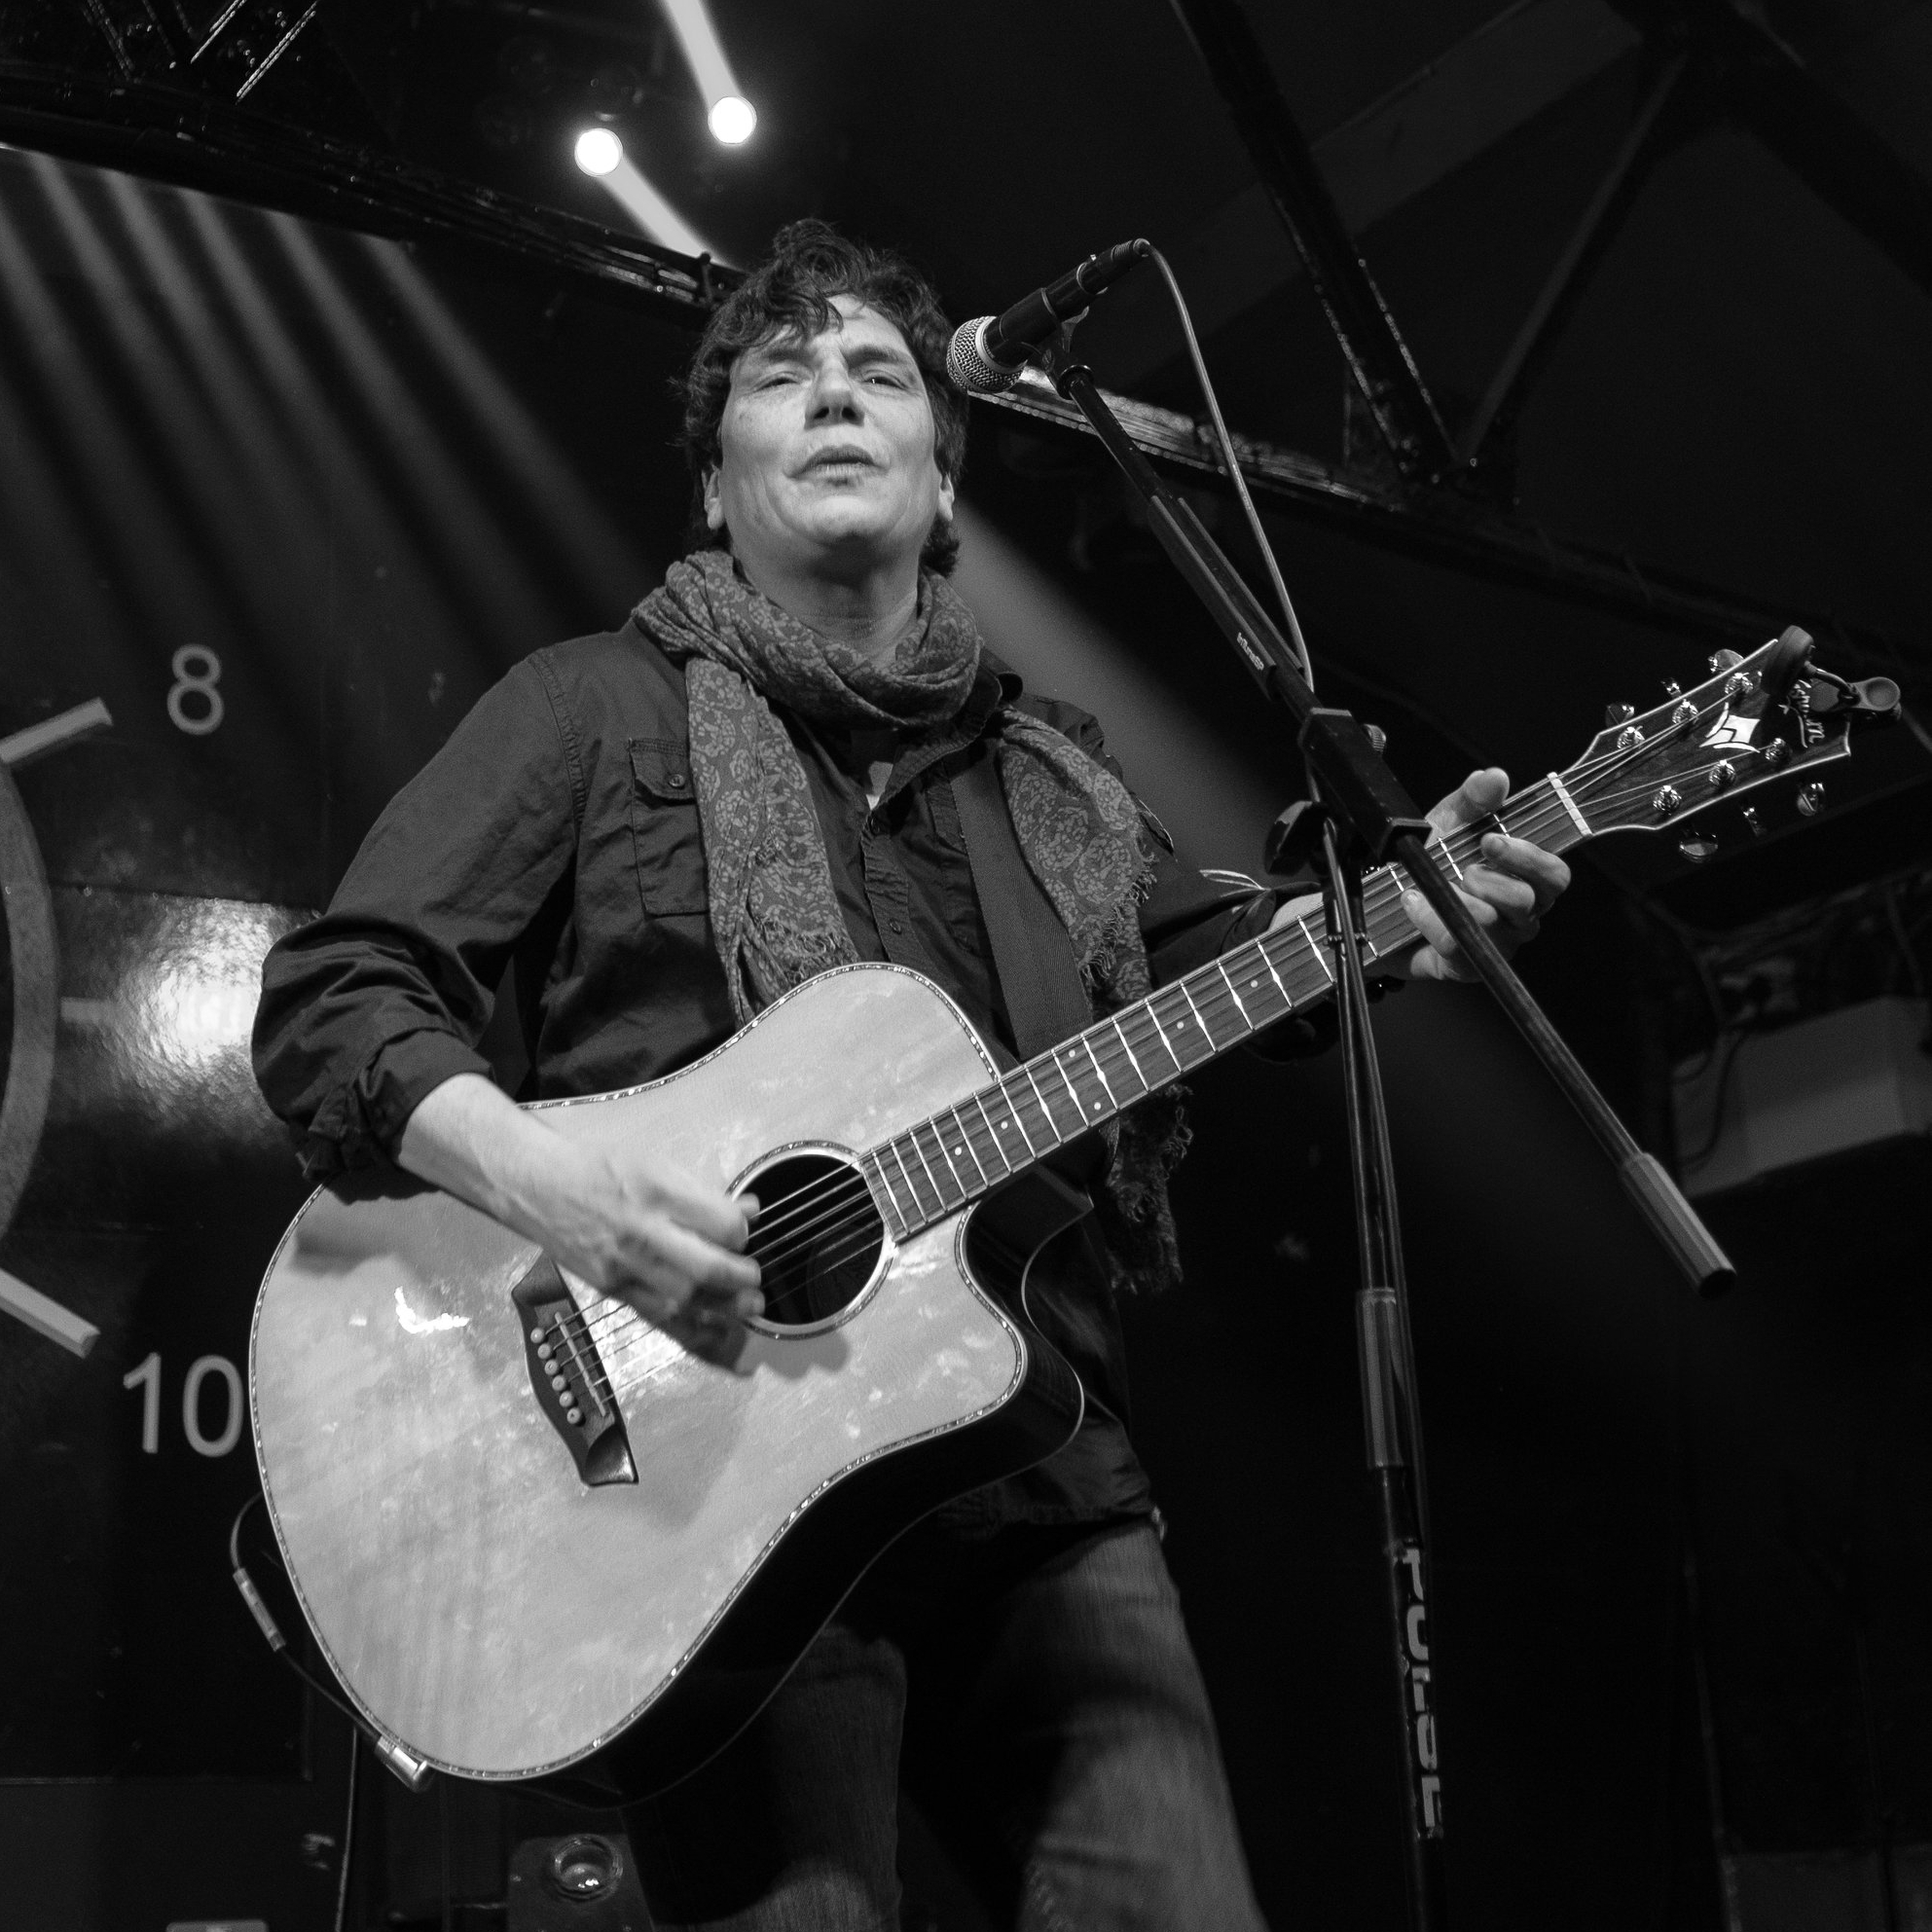 Eric Martin / Eleven / Stoke-on-Trent October 30th